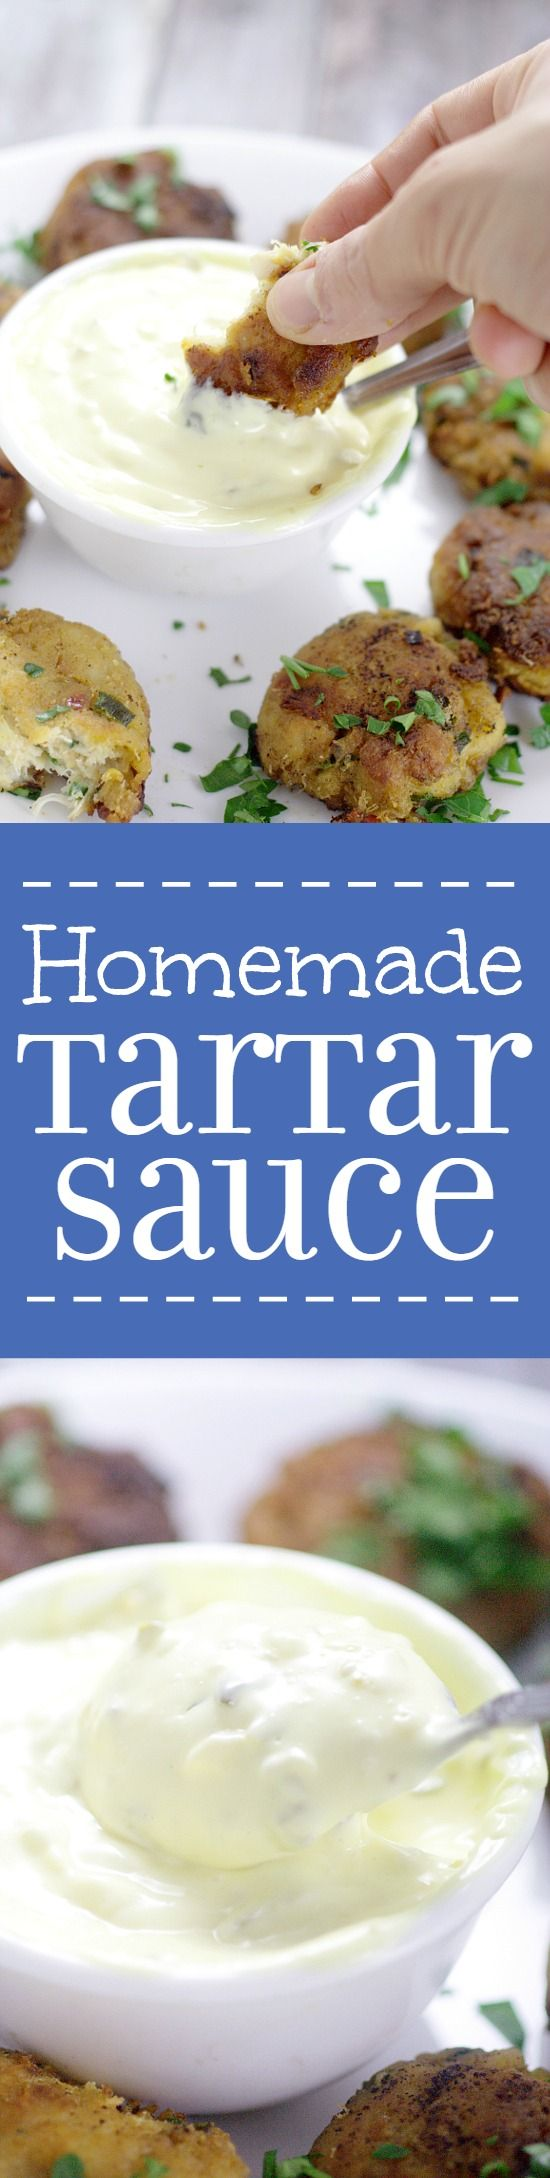 Homemade Tartar Sauce is super easy to make!Make this creamy, tangy Homemade Tartar Sauce recipe in just 5 minutes to go perfectly with your favorite fish dish! Yum!